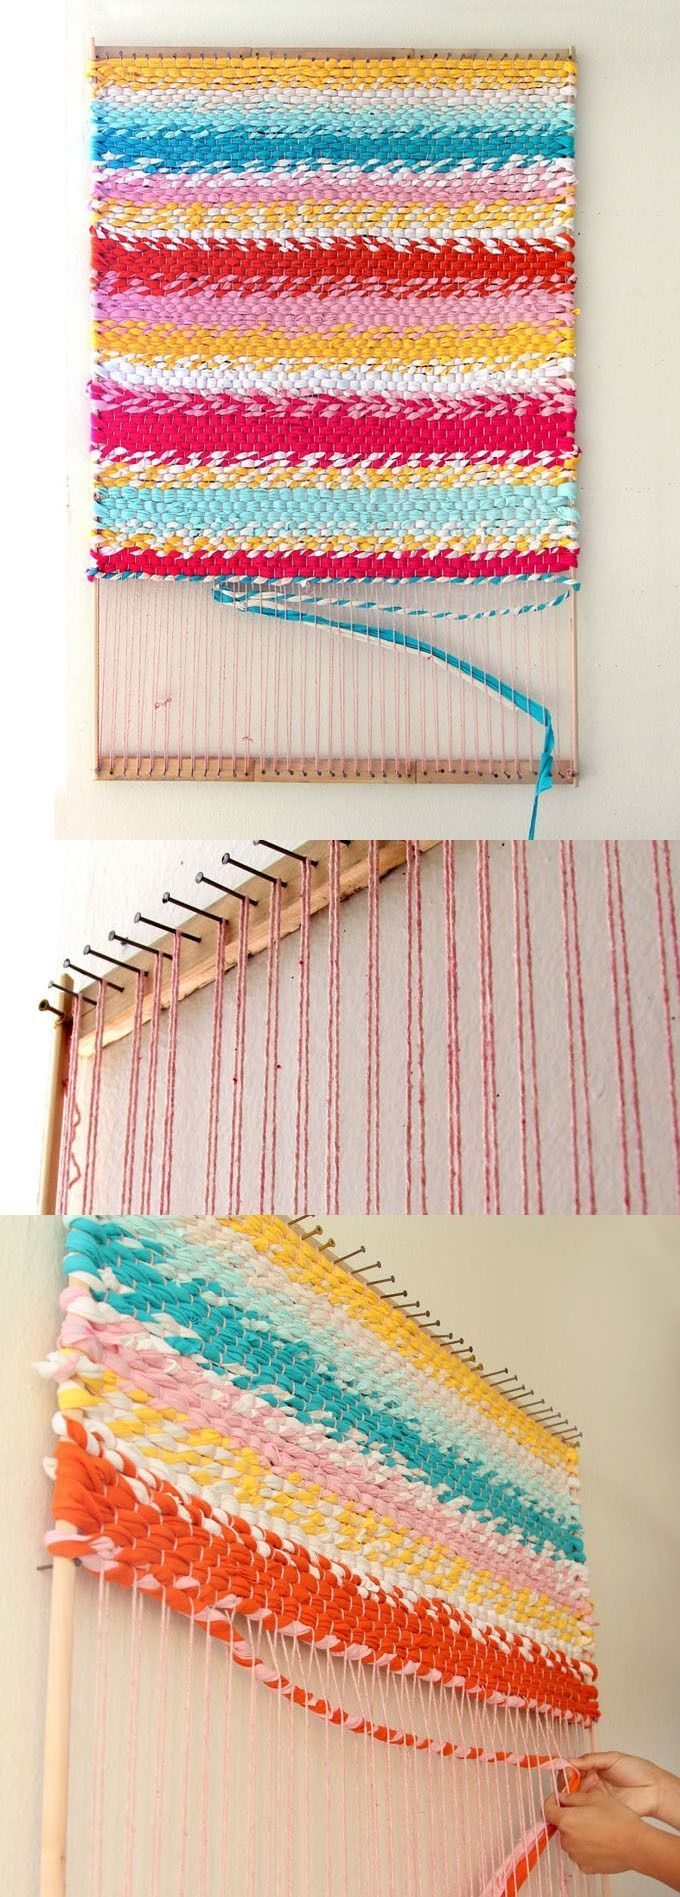 How to make dining table mats at home - Weave A T Shirt Rug With Easy Diy Loom